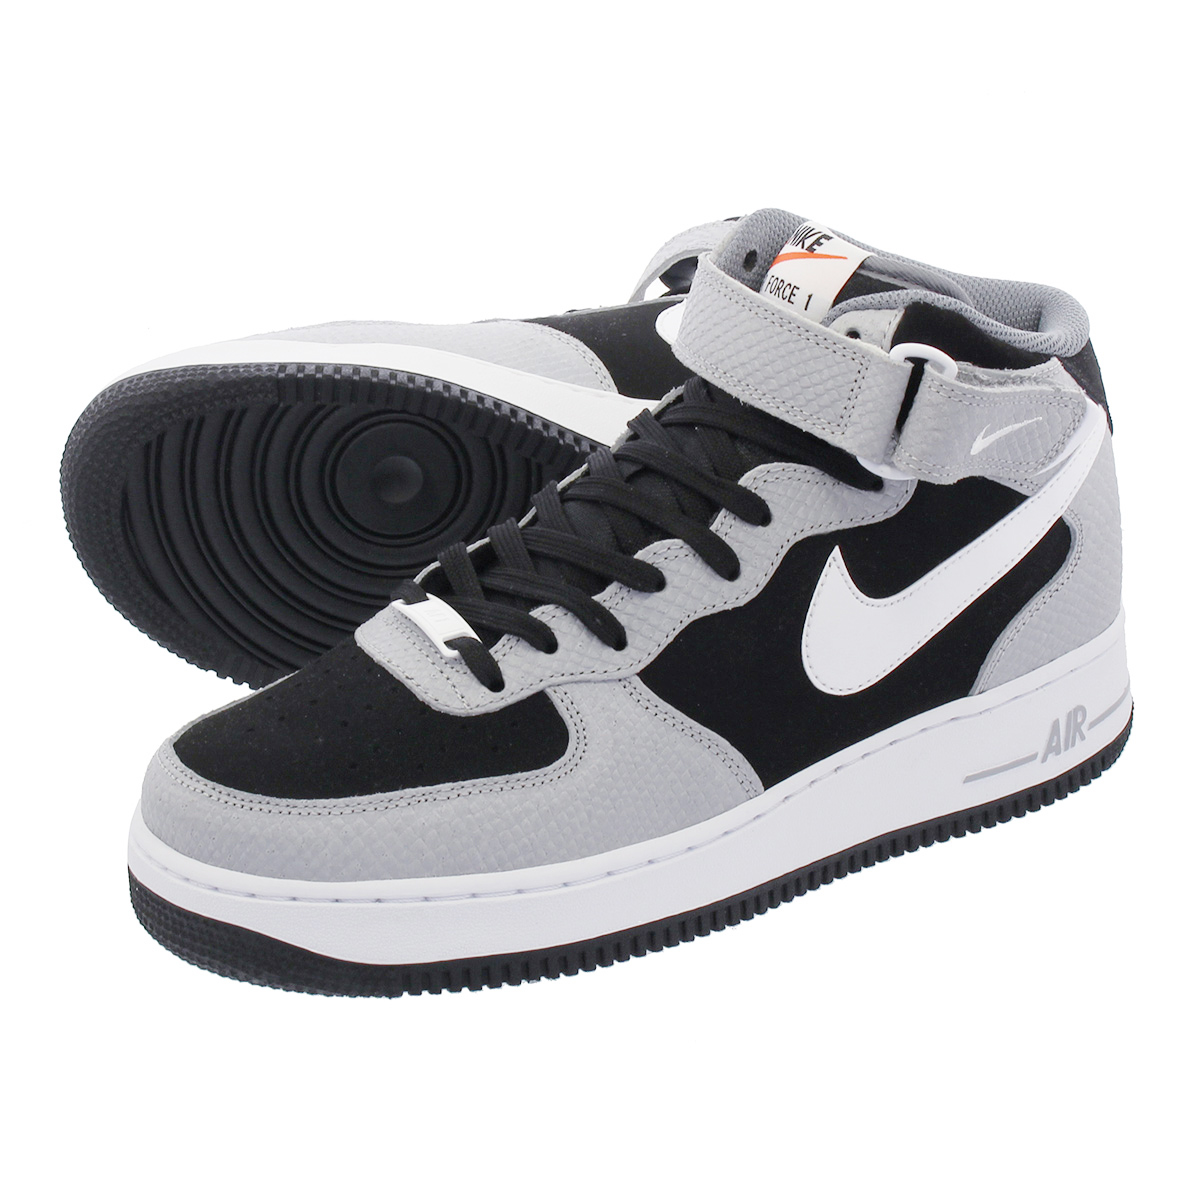 new concept 983fa abf2a LOWTEX PLUS: NIKE AIR FORCE 1 MID '07 Nike air force 1 mid '07 BLACK ...